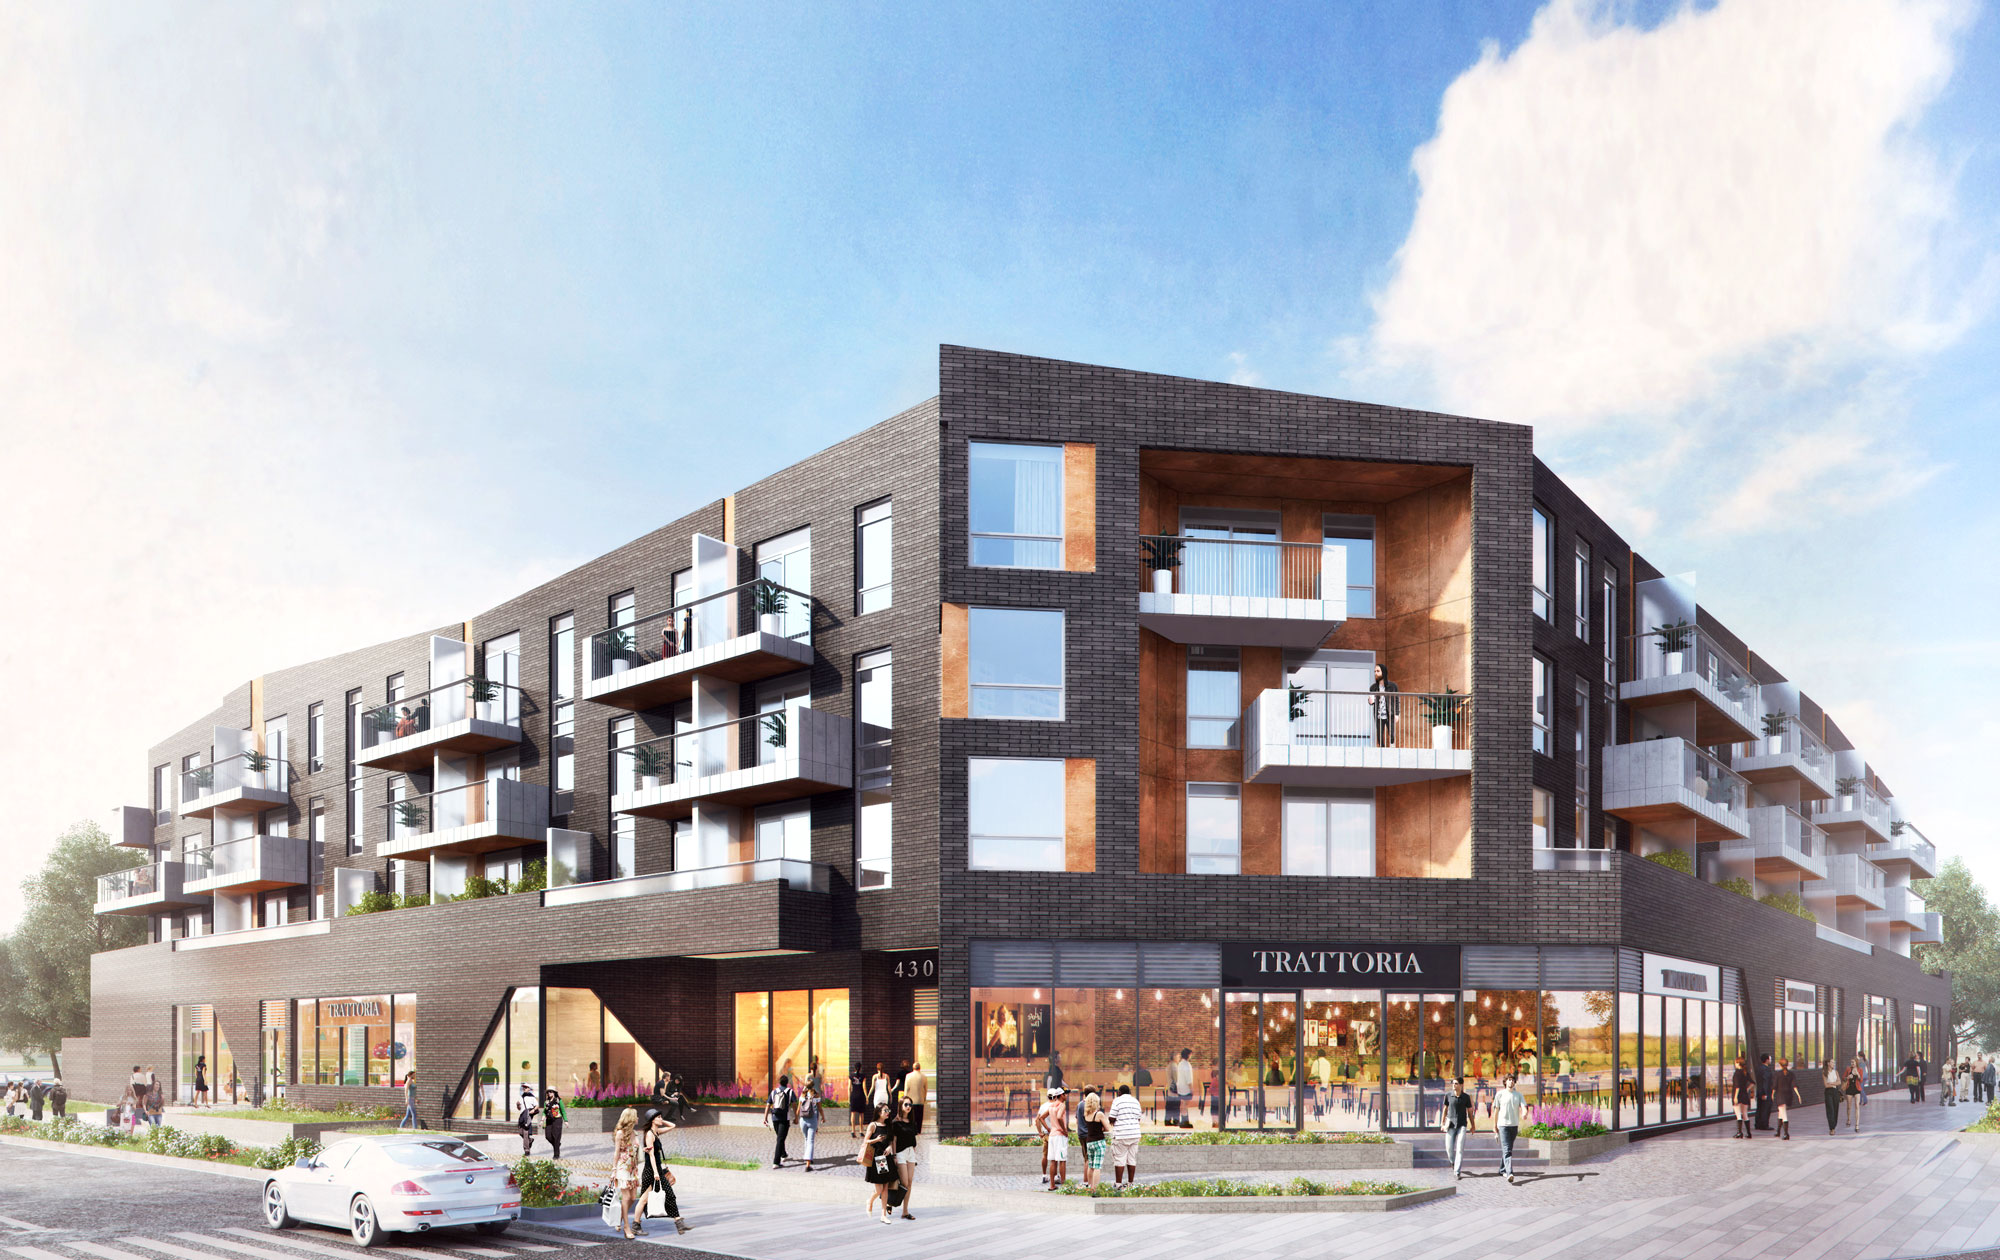 Barrie, Ontario. - A boutique mid-rise condo with integrated retail space that will elevate the rapidly expanding Barrie. Stay tuned for updates.